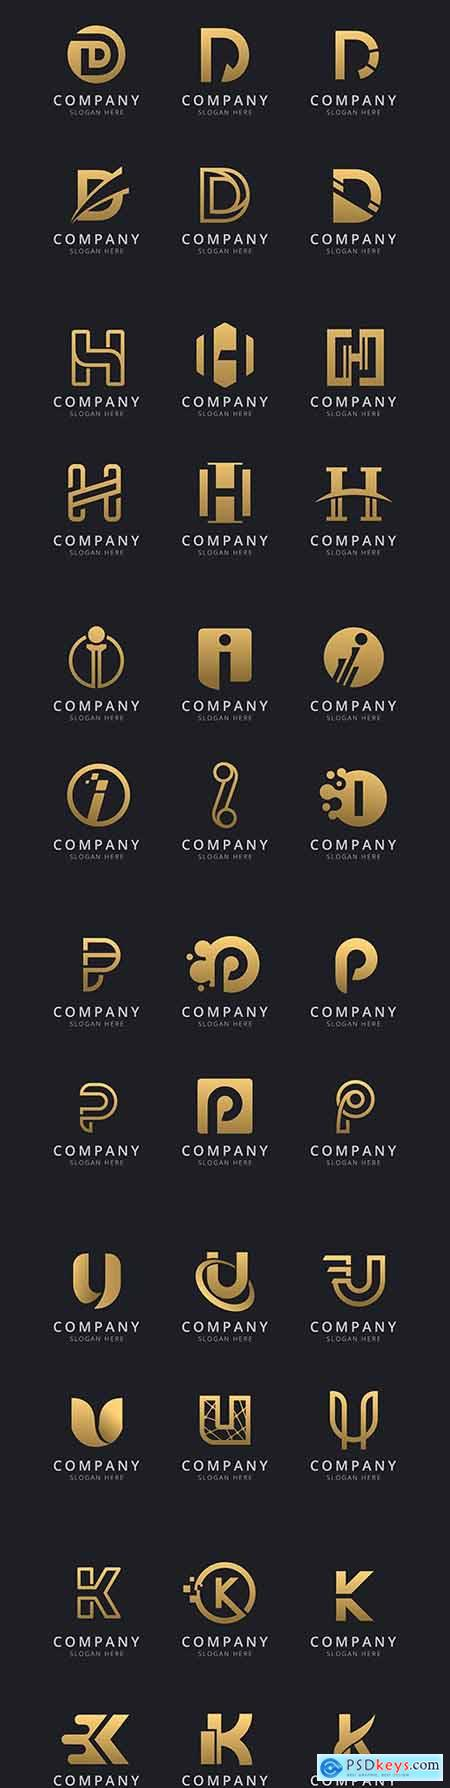 Initials and letter with golden style company logo template